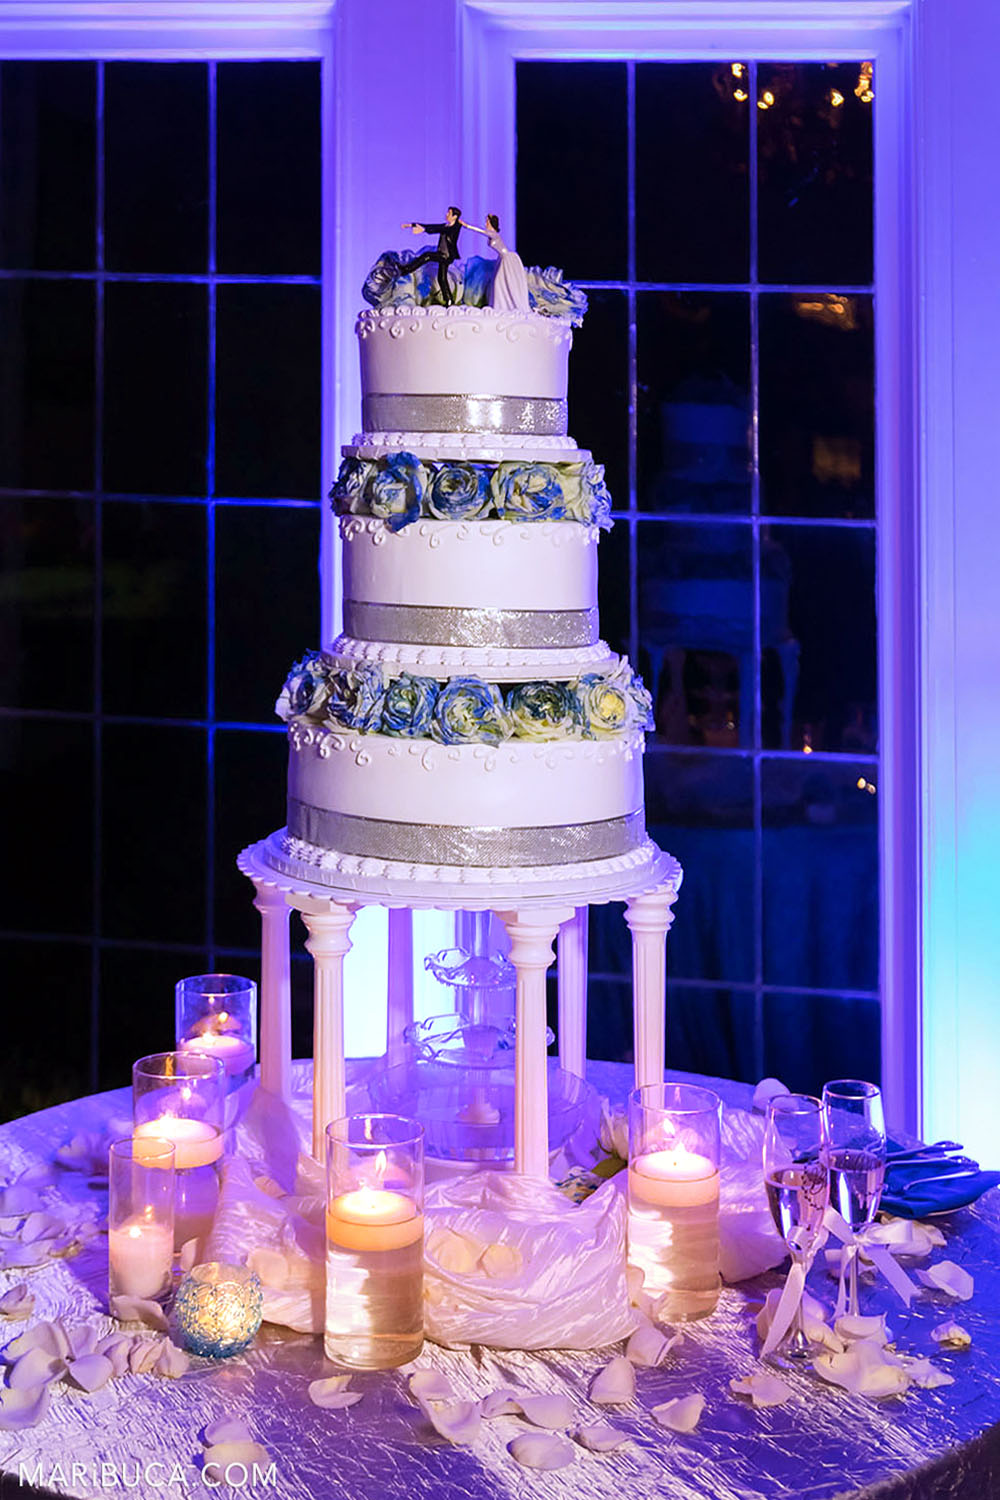 Beautiful wedding cake stands surrounded by lit candles and purple lights theme in the Morning Room, Kohl Mansion, Burlingame